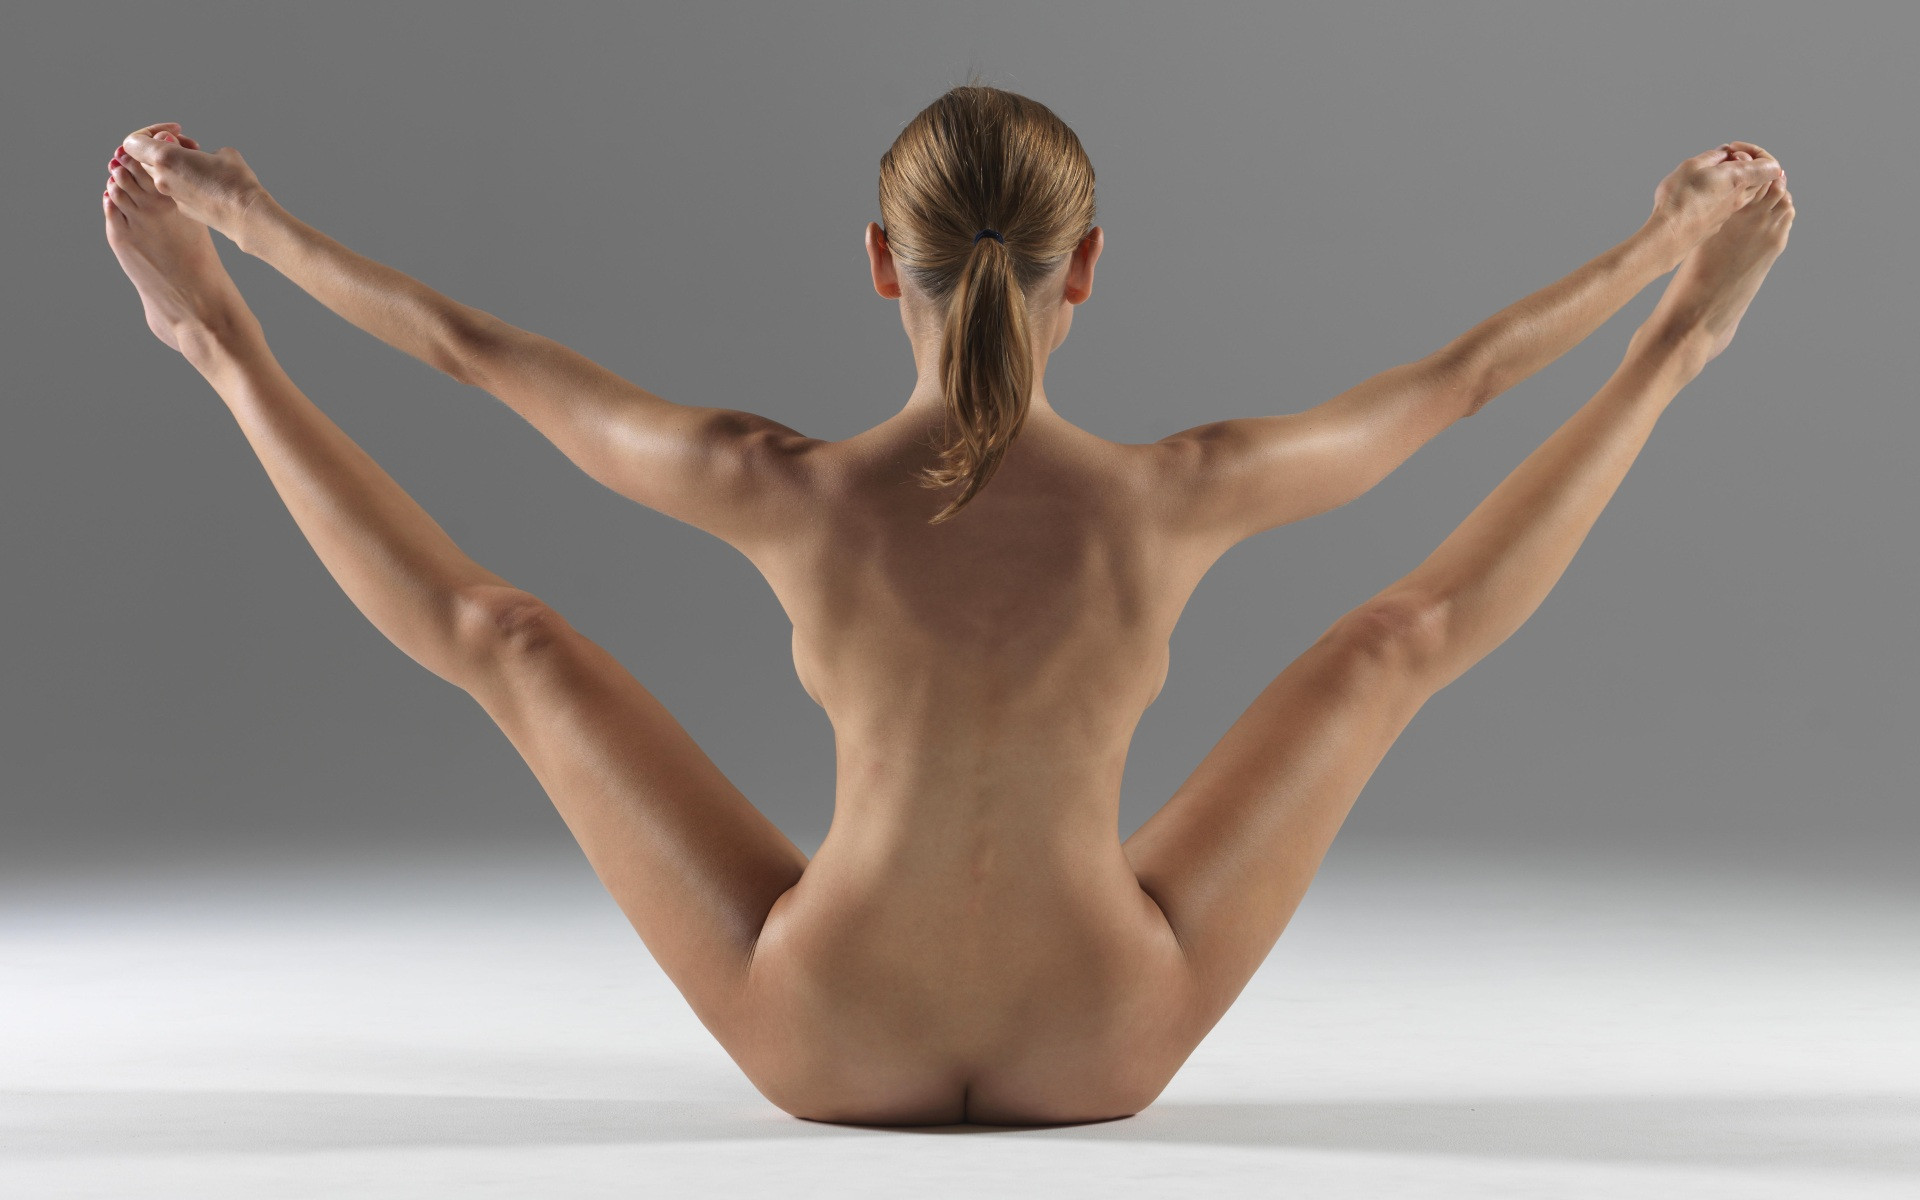 Yoga poses nude sex with you